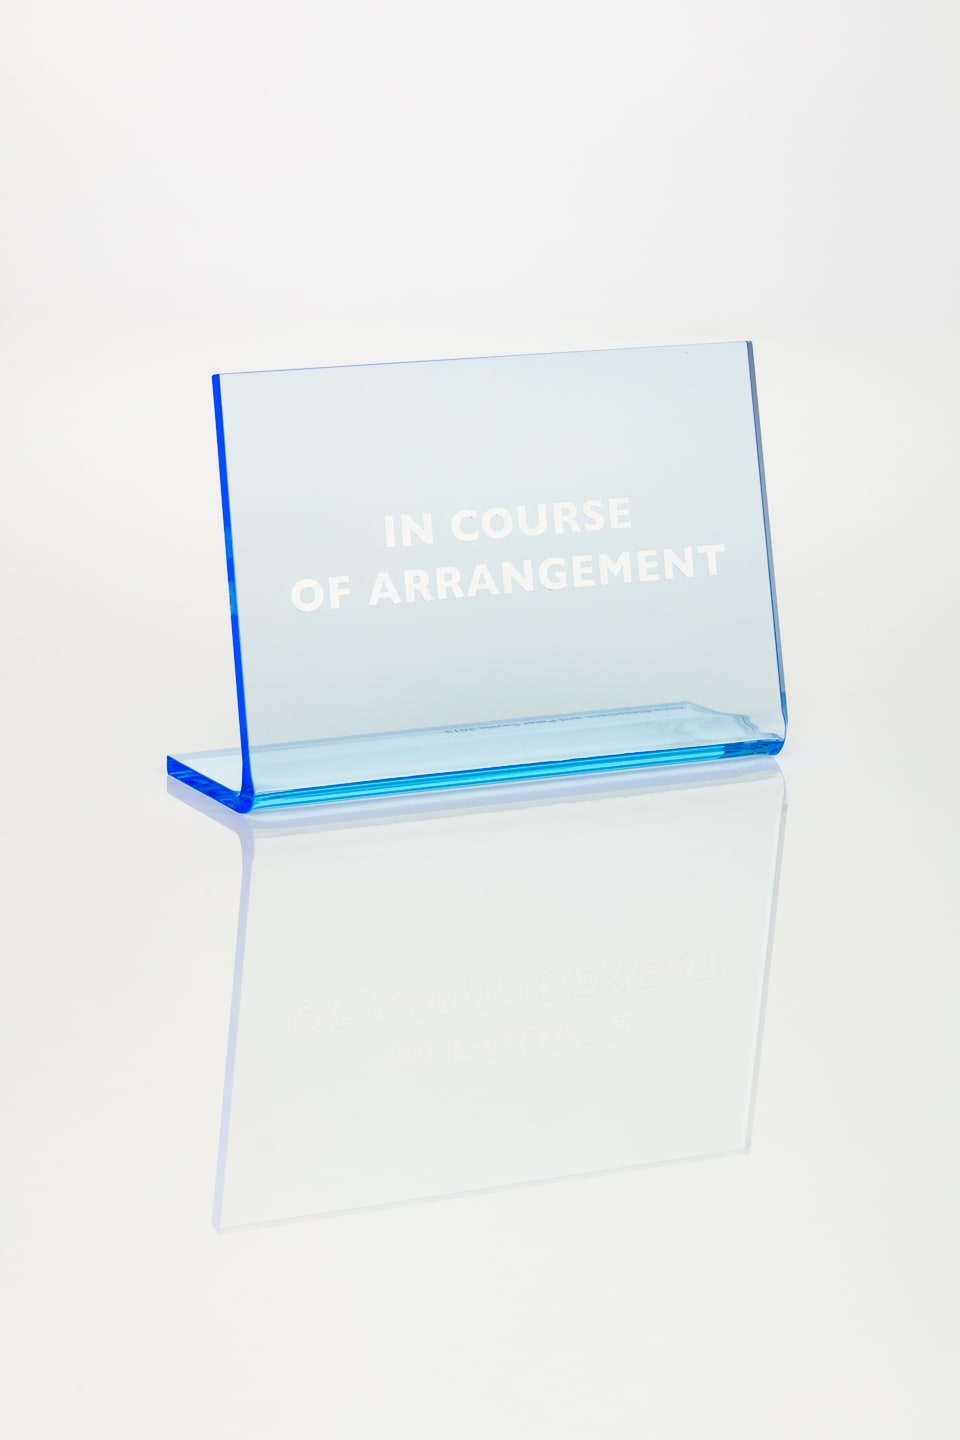 Anna Blessmann and Peter Saville In Course of Arrangement, 2013 Perspex vario cascade blue 7T5D with white type engraved font. Accompanied by a signed certificate. 15 x 10 x 0.5 cm Edition of 20